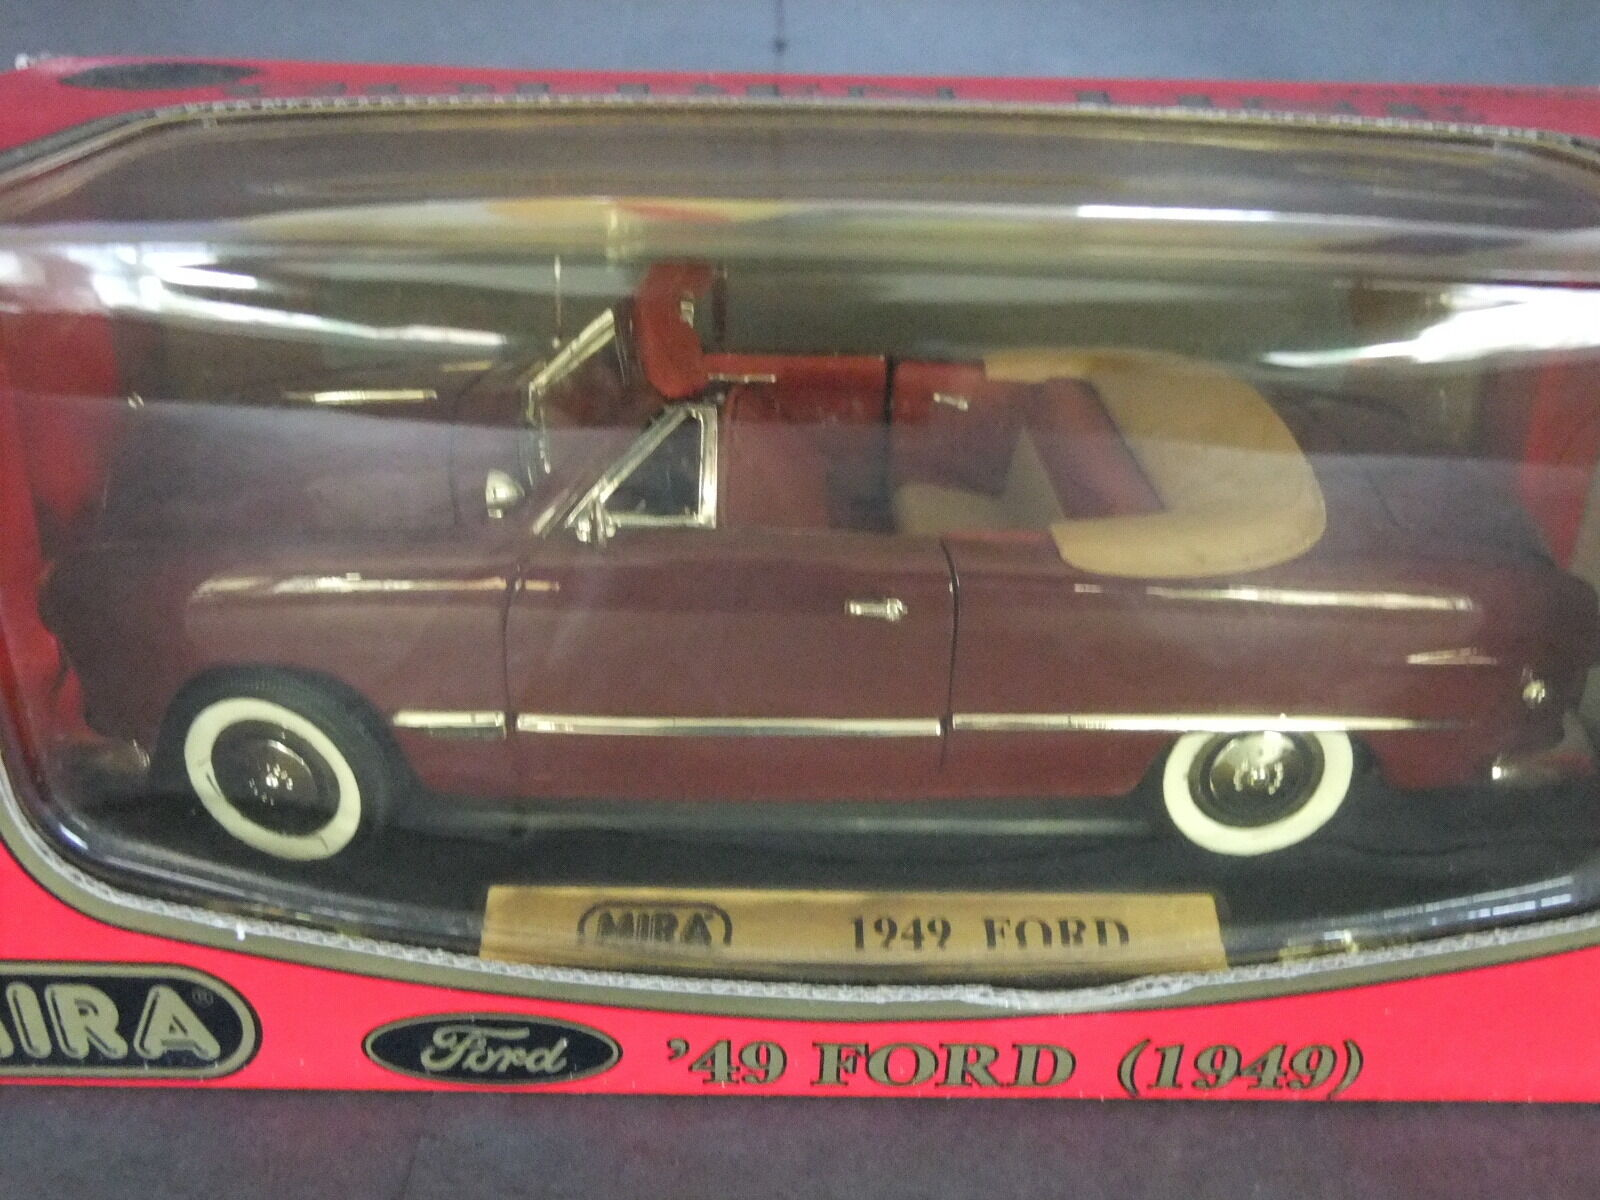 Mira 1949 Ford ConGrünible - 1 18 Scale Maroon